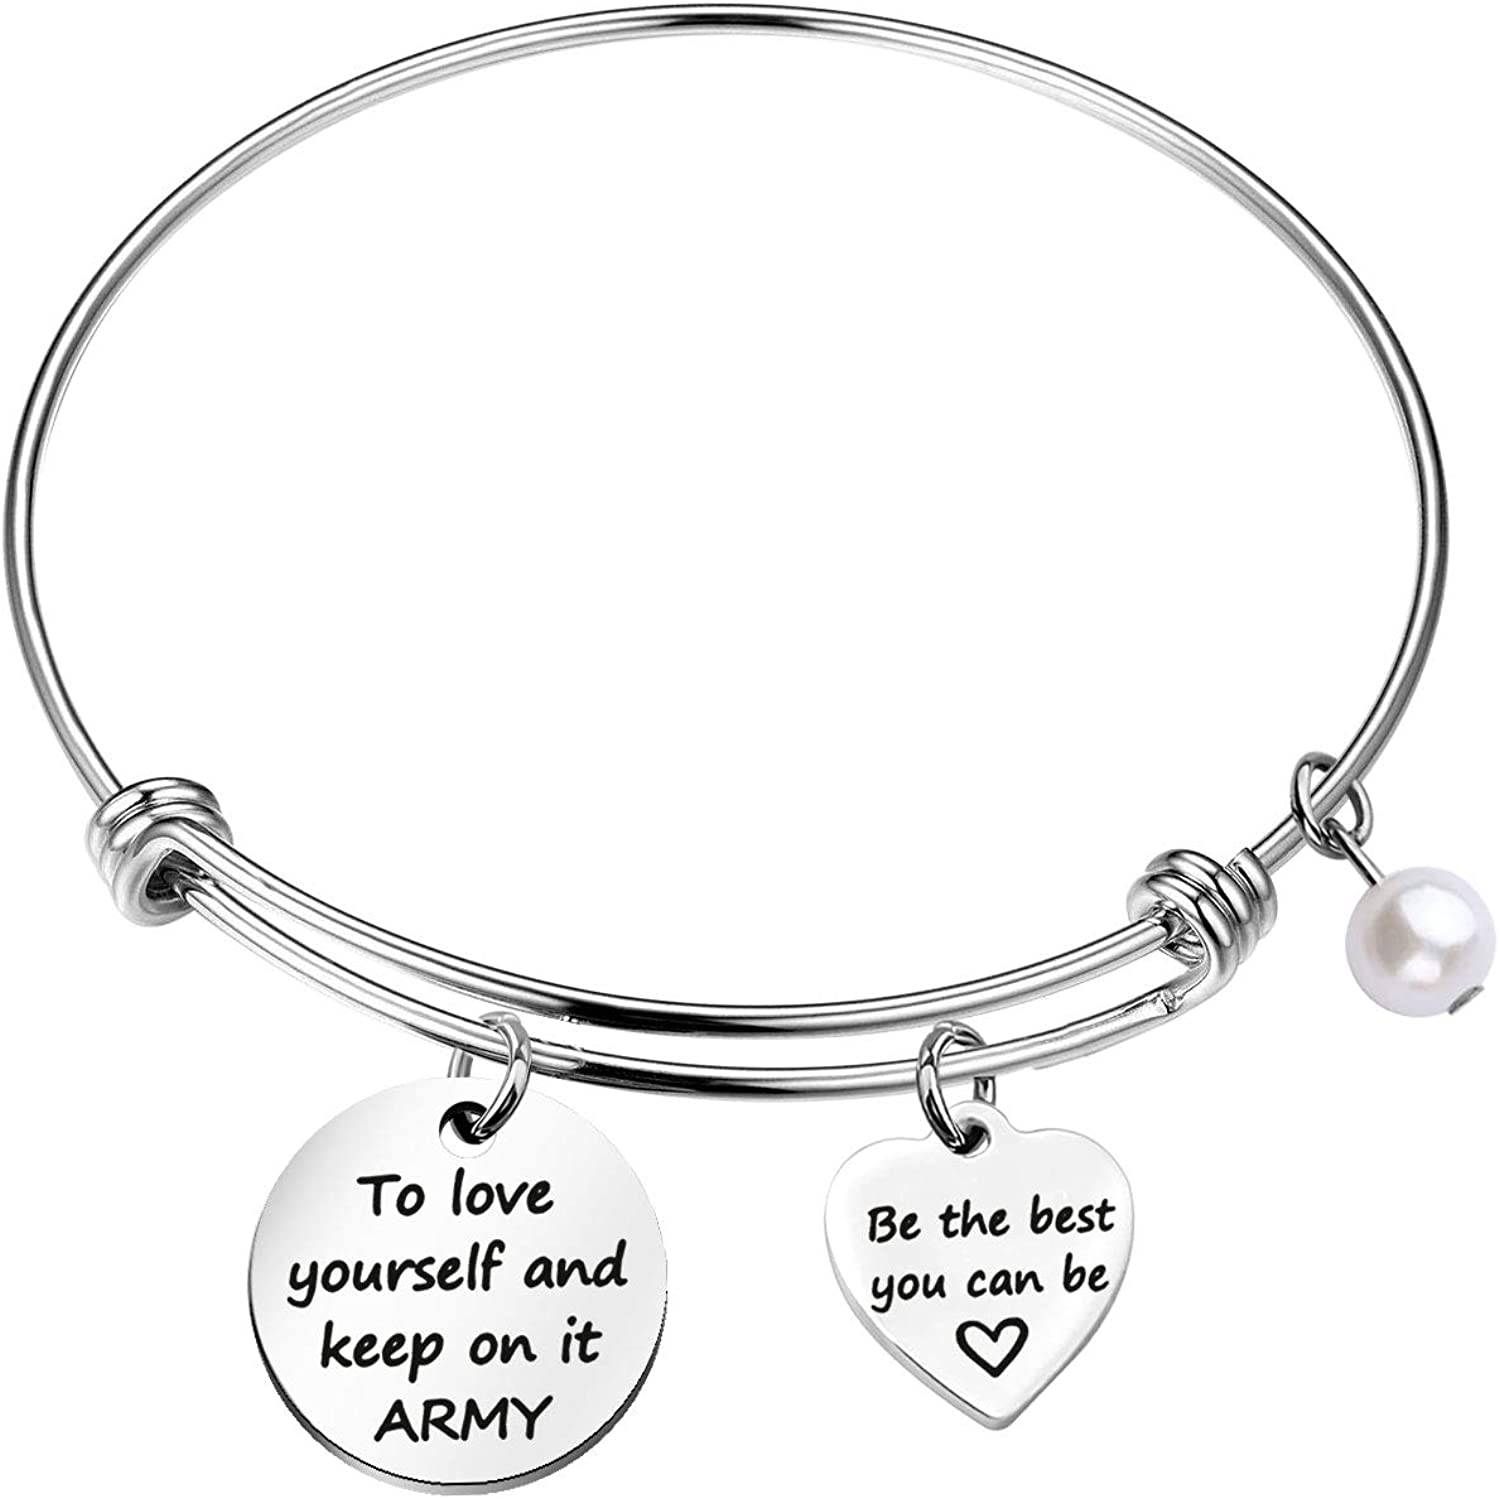 WSNANG Free shipping / New SALENEW very popular Kpop Army Gift to Love Brace Yourself On and It Keep